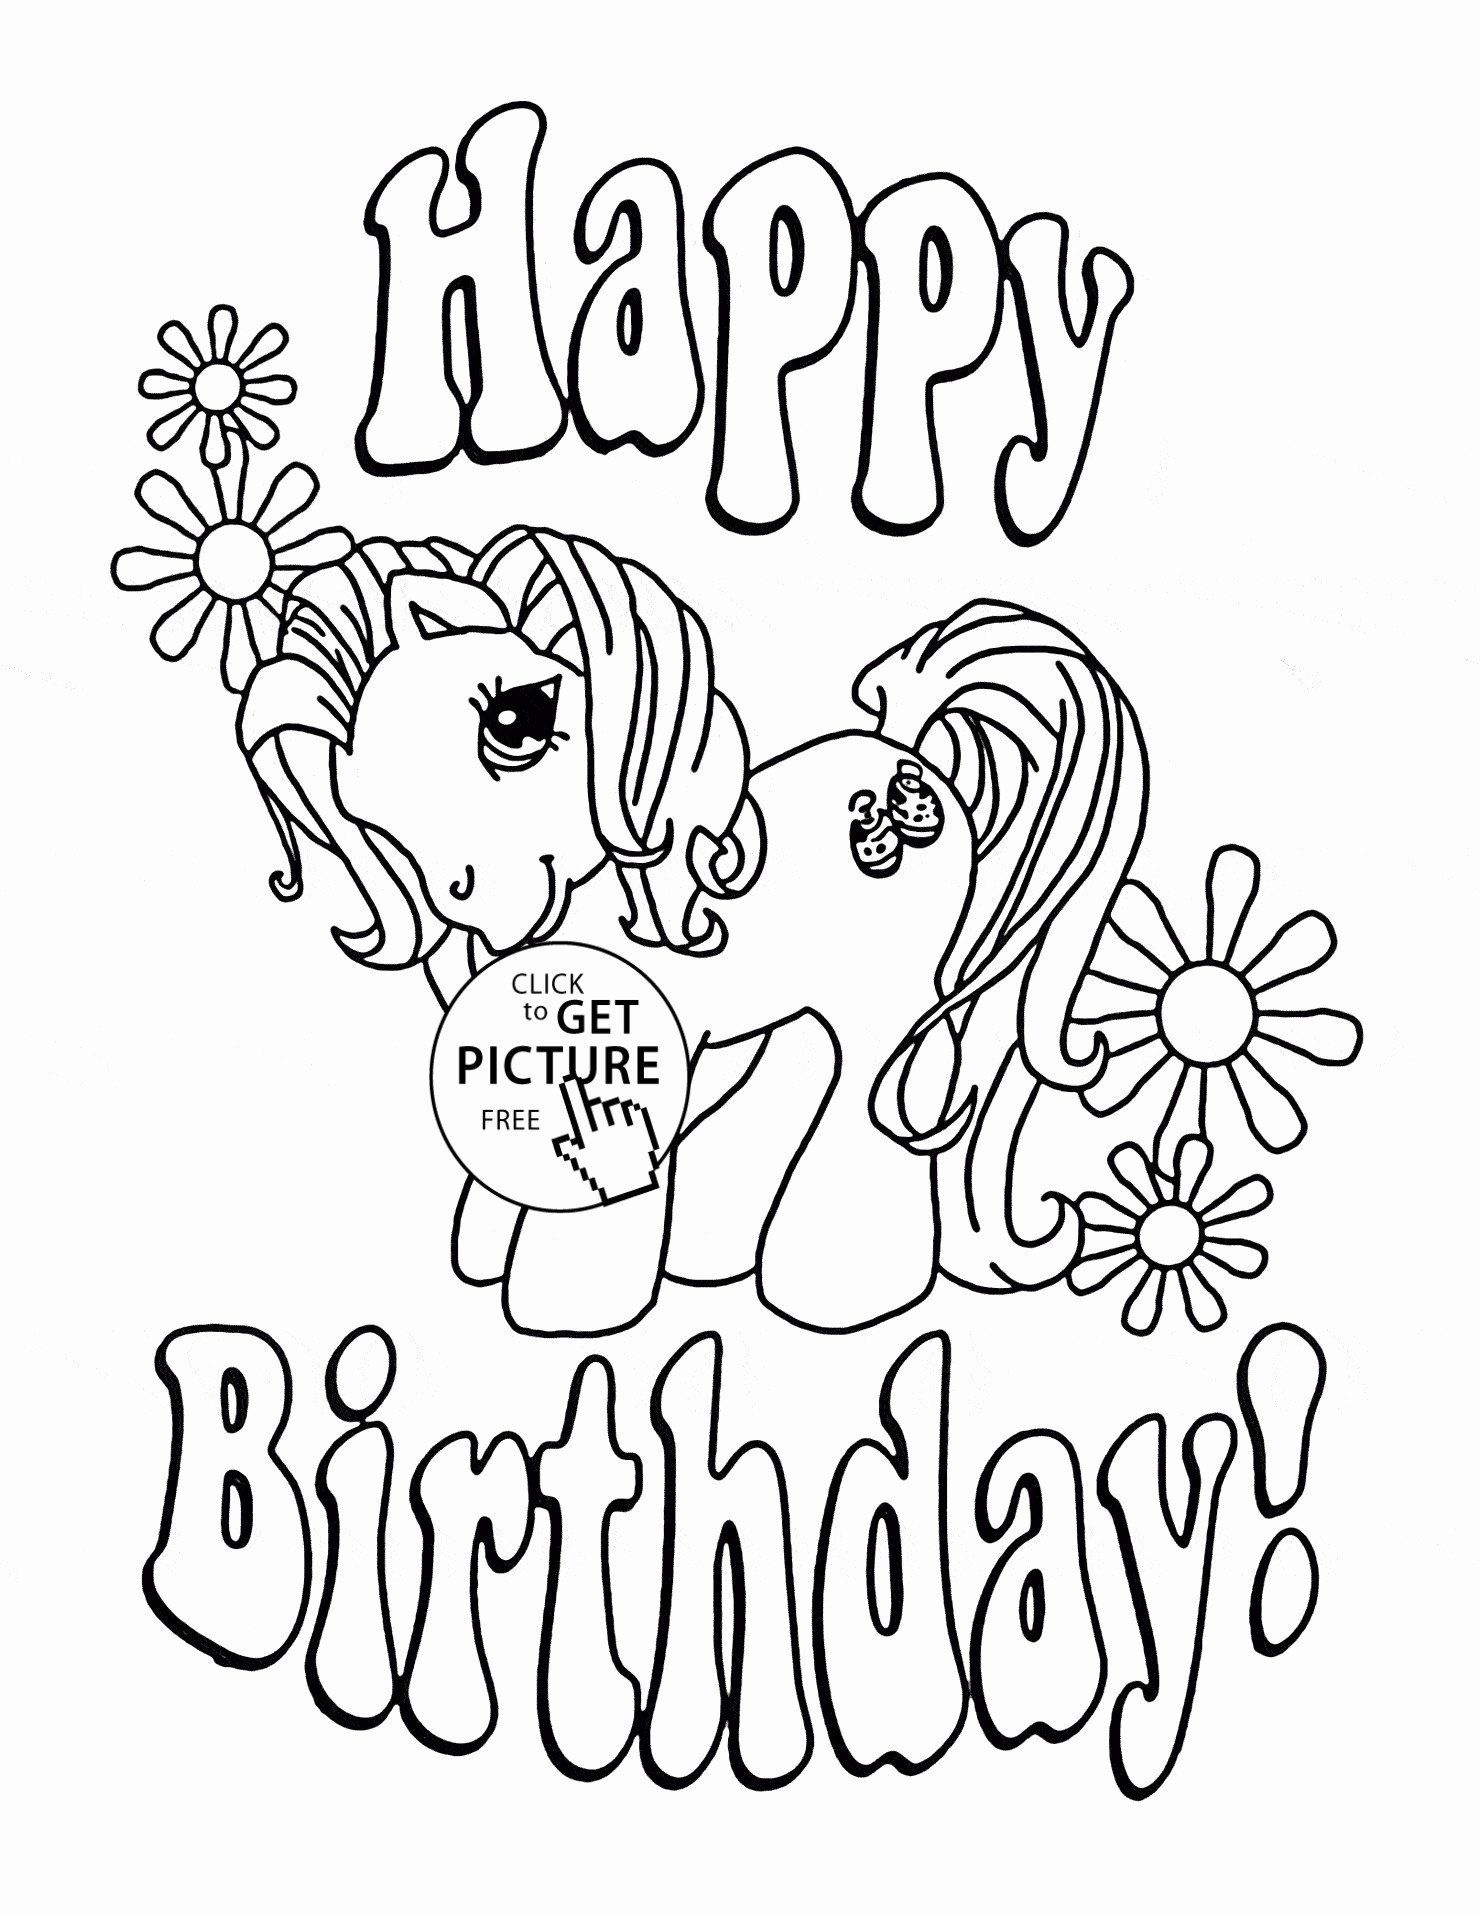 Frozen Birthday Cards Printable Best Of Coloring Coloring Free Happyay Pages Print Coloring Birthday Cards Happy Birthday Coloring Pages Unicorn Coloring Pages